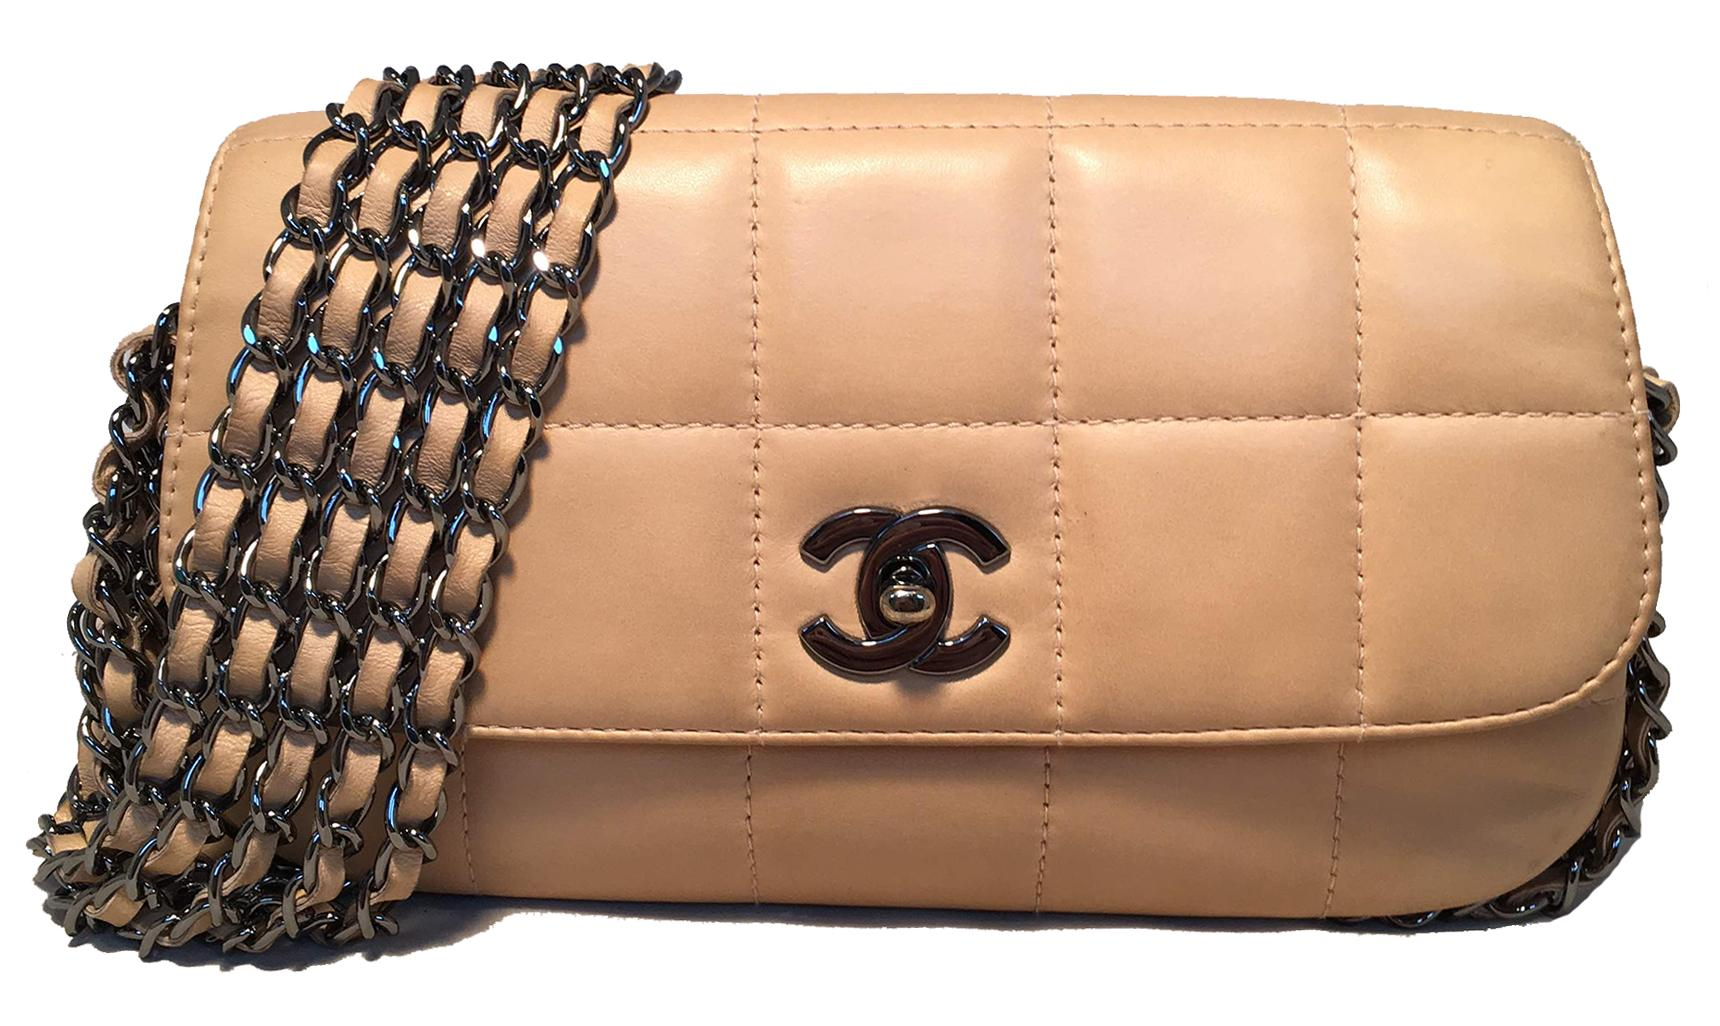 6e76d0a6c6de Vintage Chanel Purses and Handbags at 1stdibs